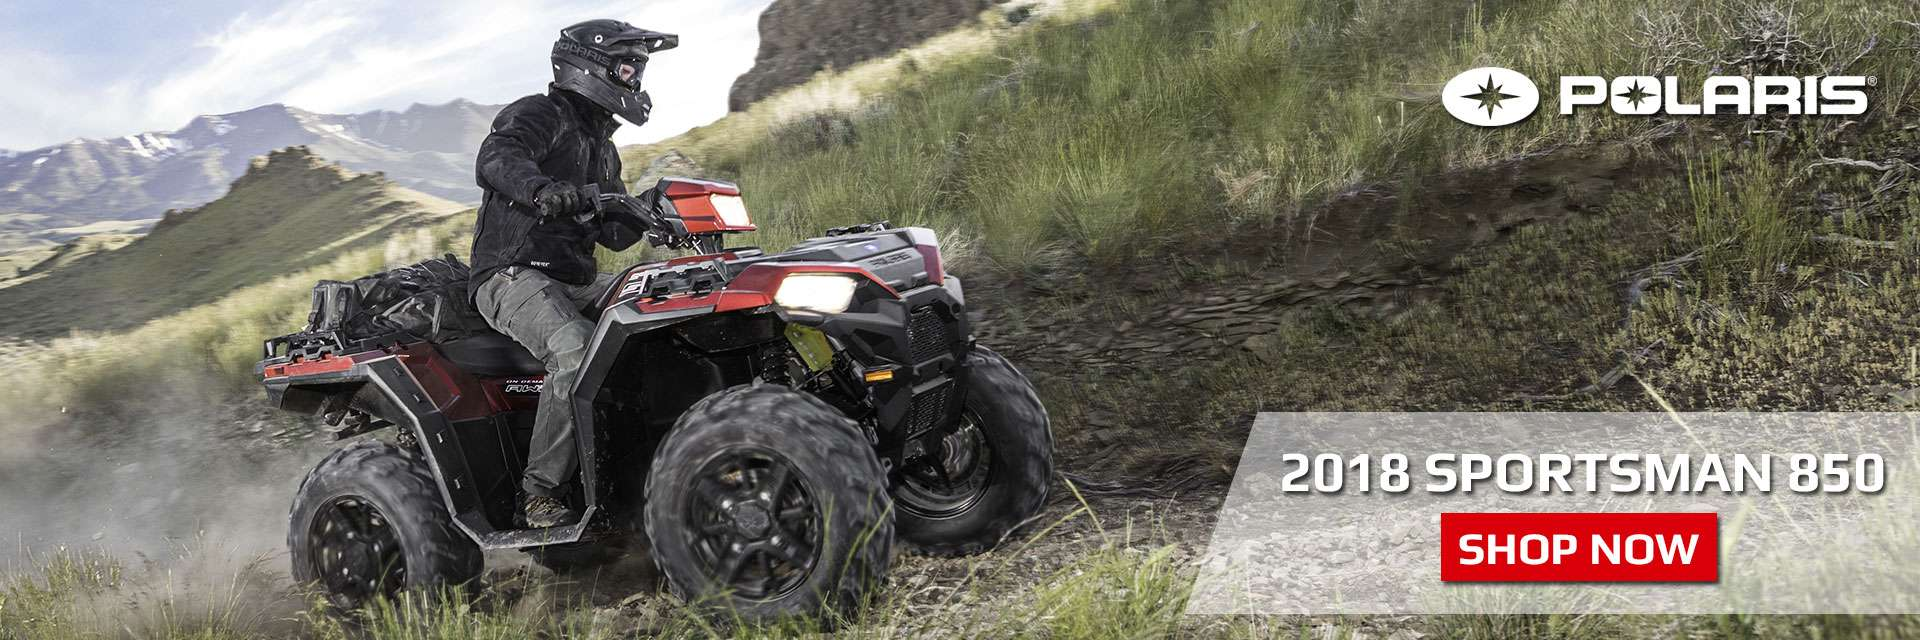 Shop Polaris Sportsman 850 at All Ohio Motorsports located in Cleveland, OH